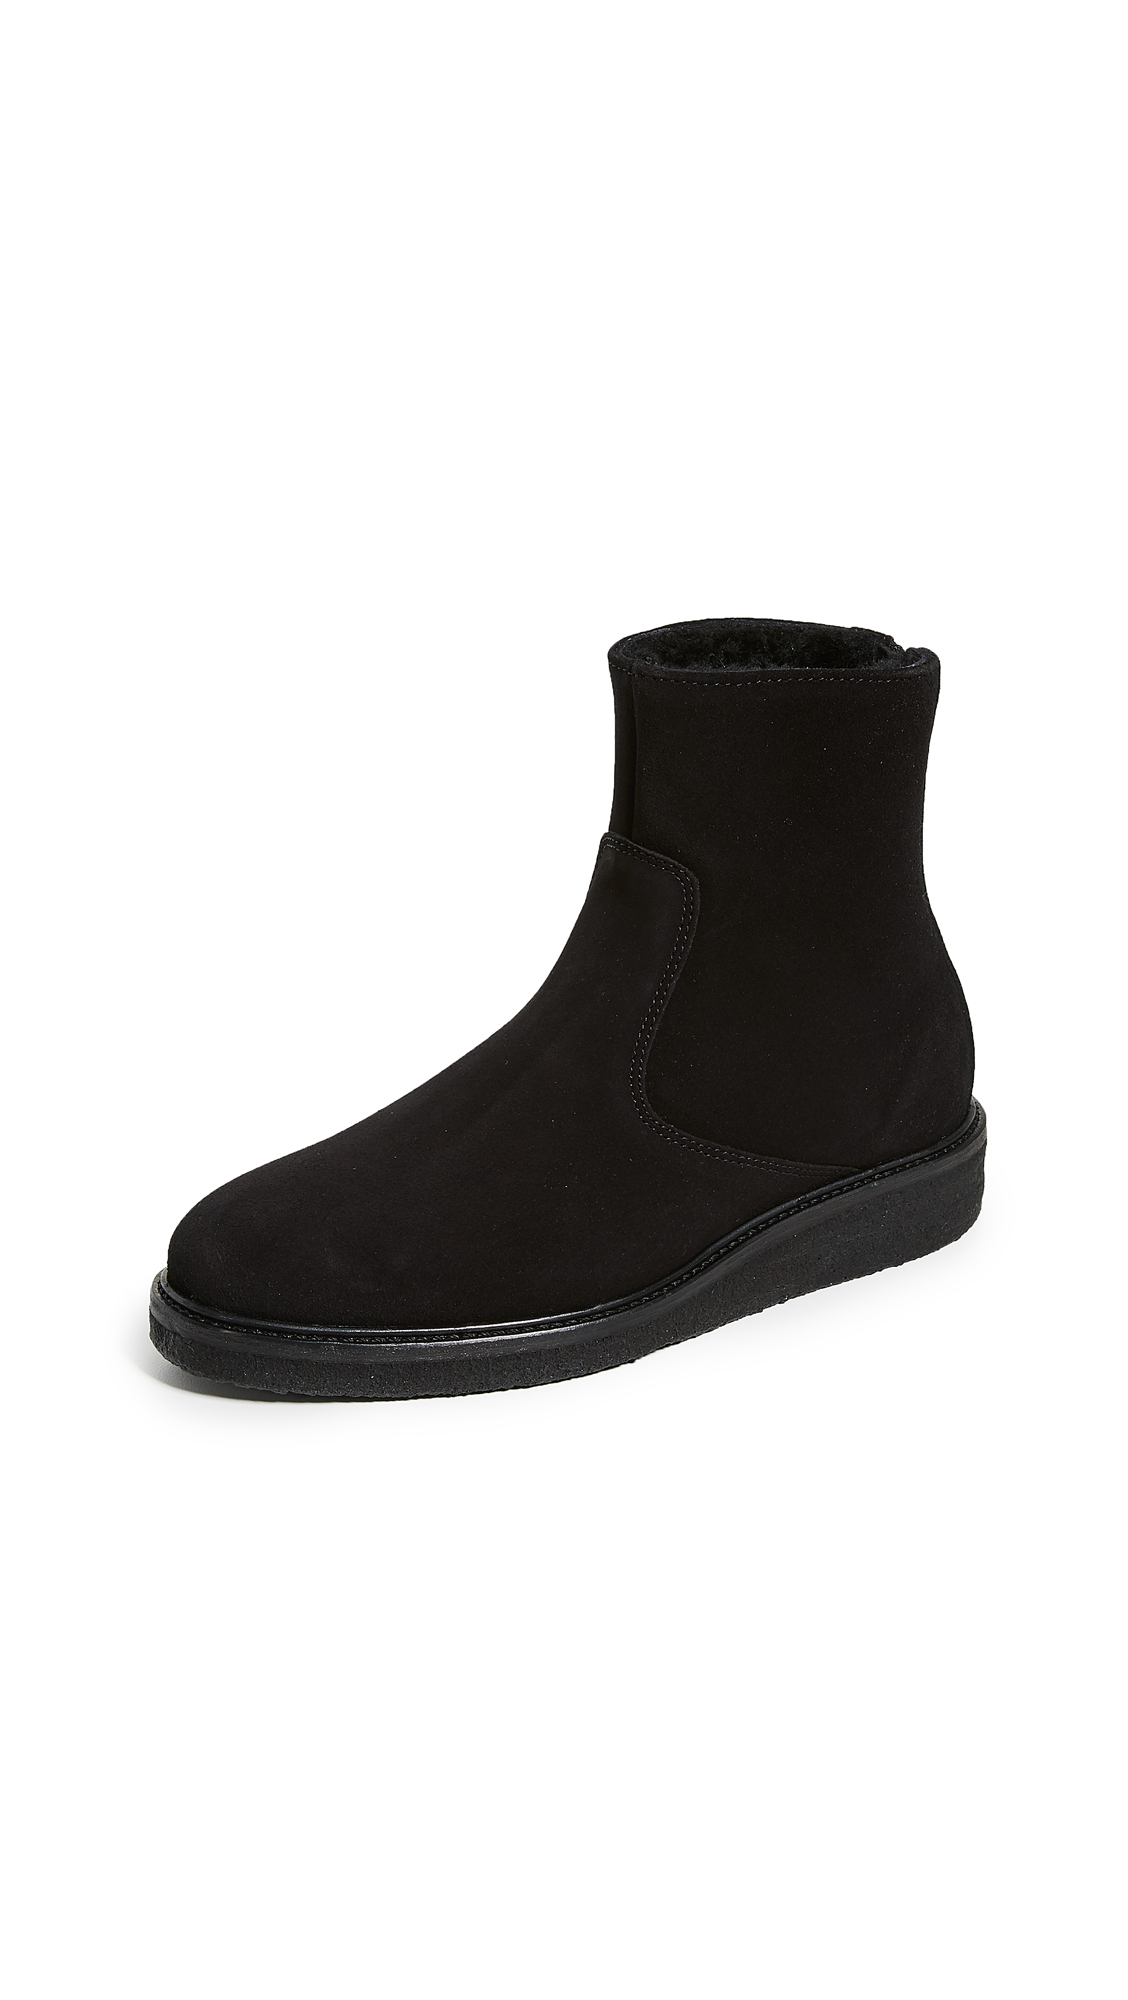 WANT Les Essentiels Stevie Ankle Boots - Black